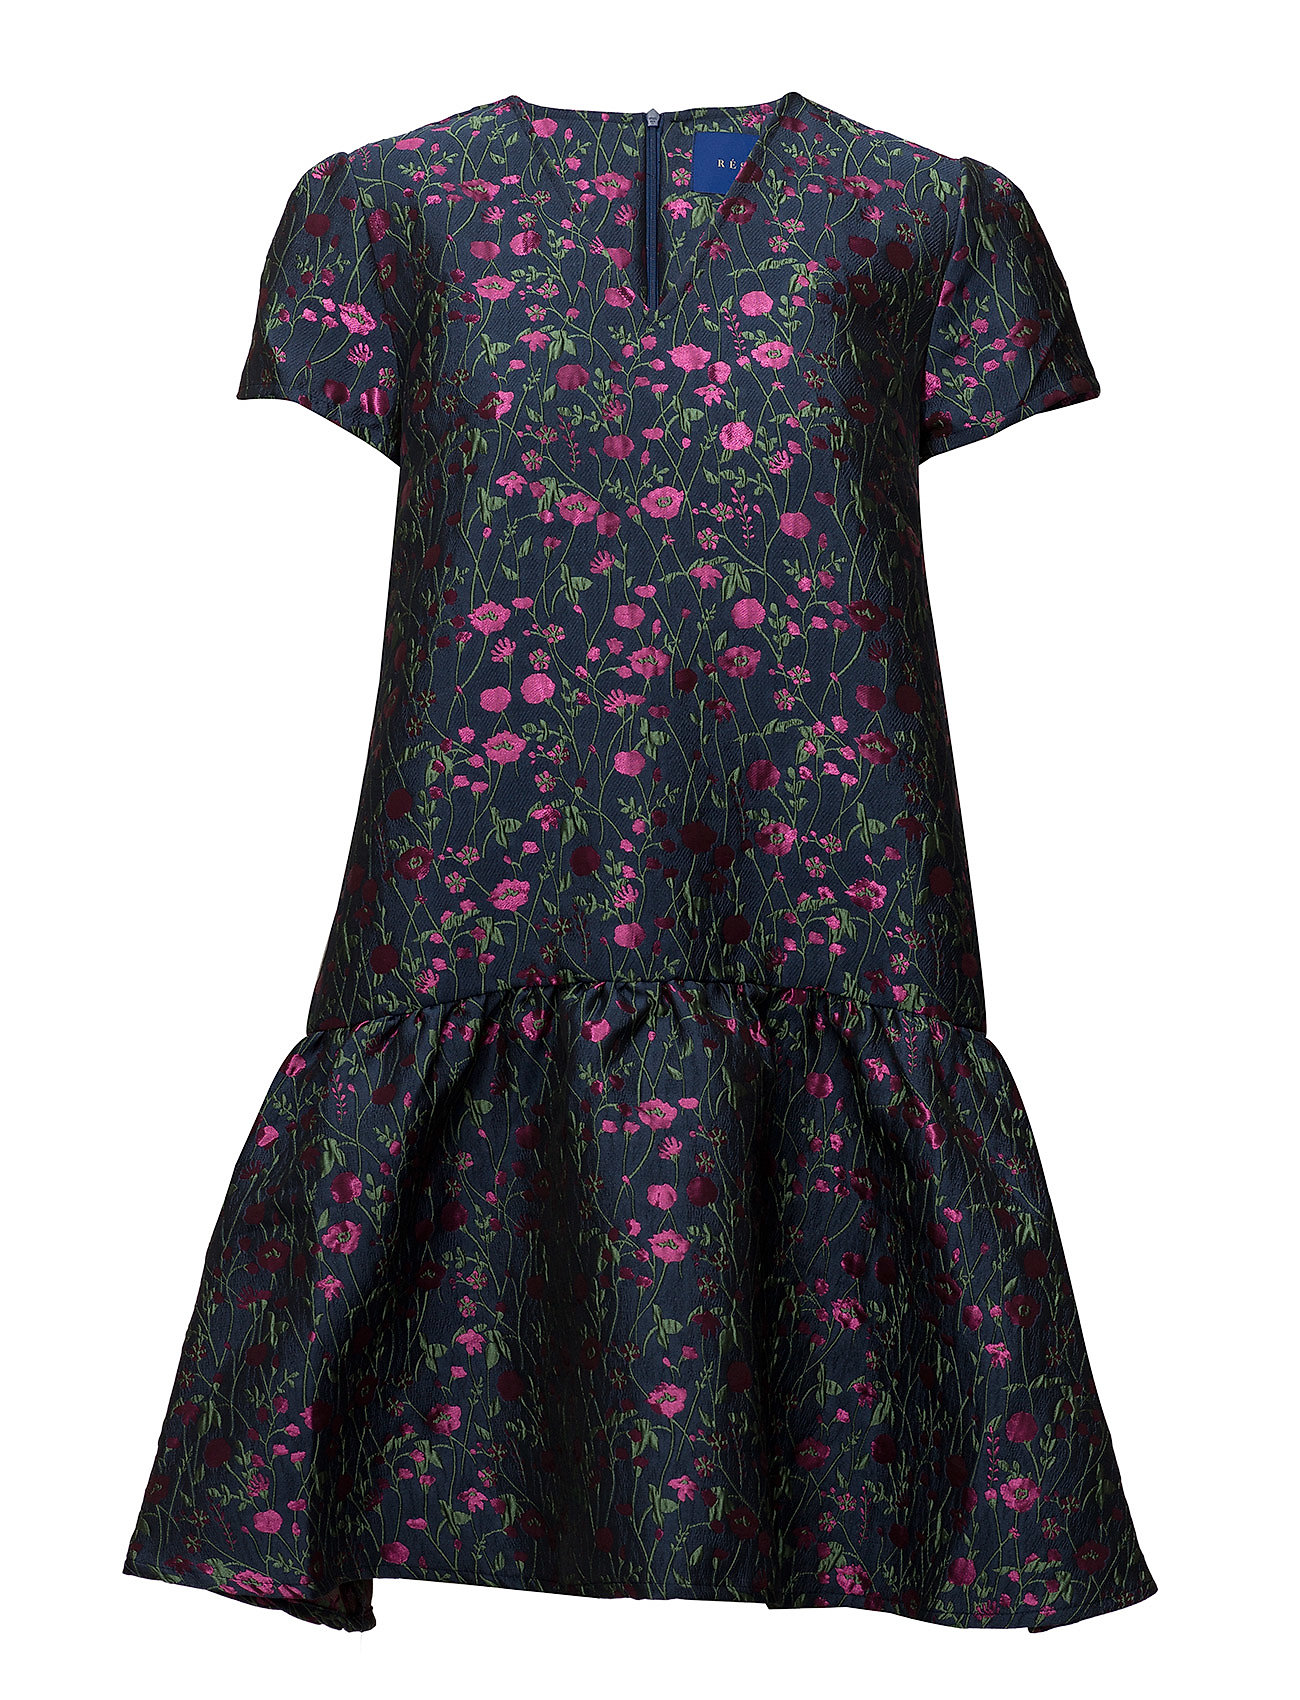 heather dress  navy   81 60  u20ac  - r u00e9sum u00e9